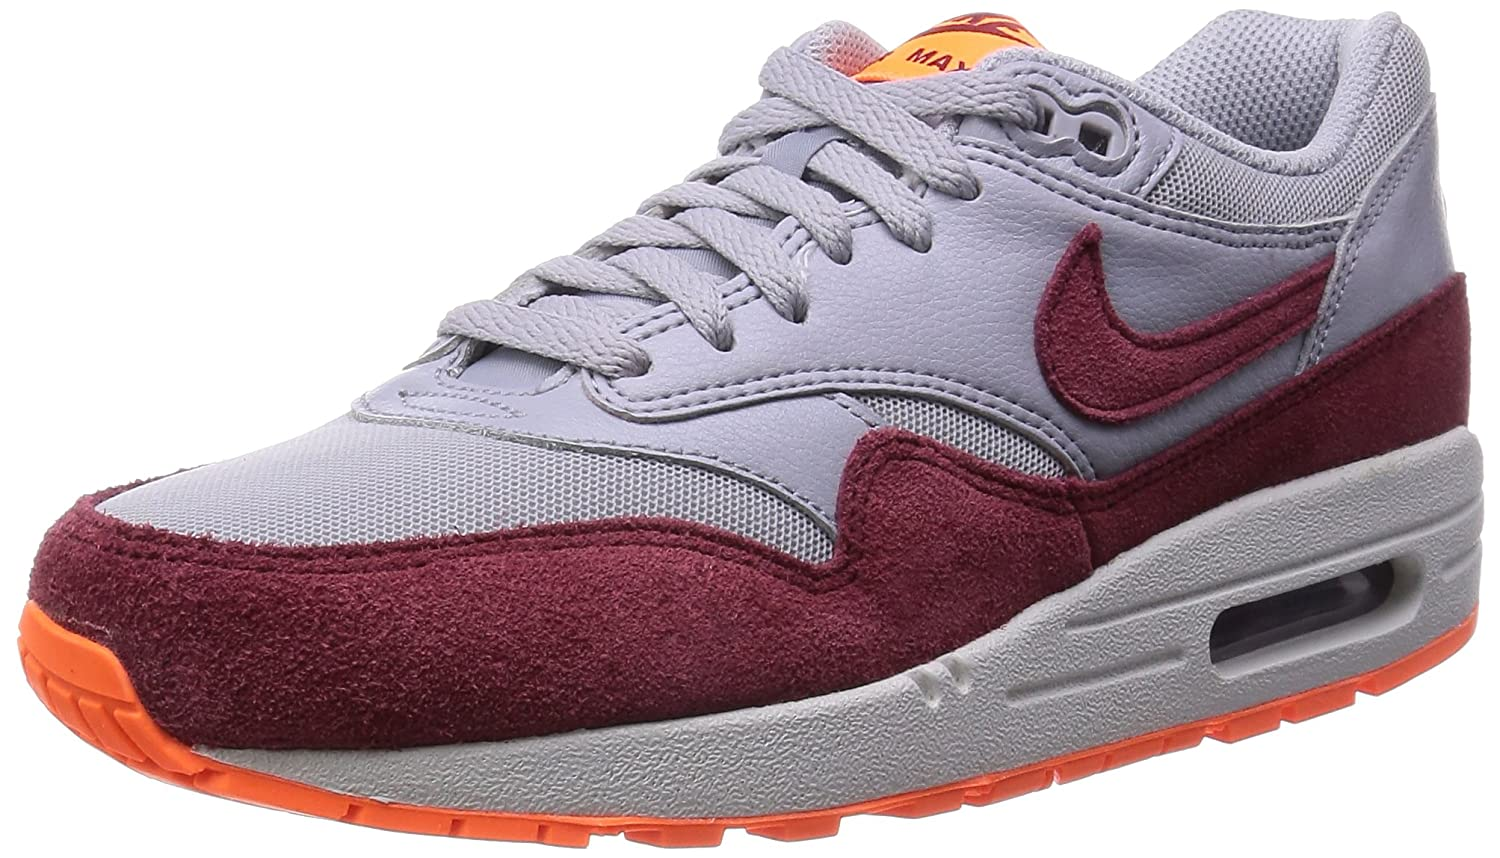 Nike Wmns Air MAX 1 Essential - para Hombre 38 EU|Wlf Gry/Tm Rd-ttl Orng-smmt Wh